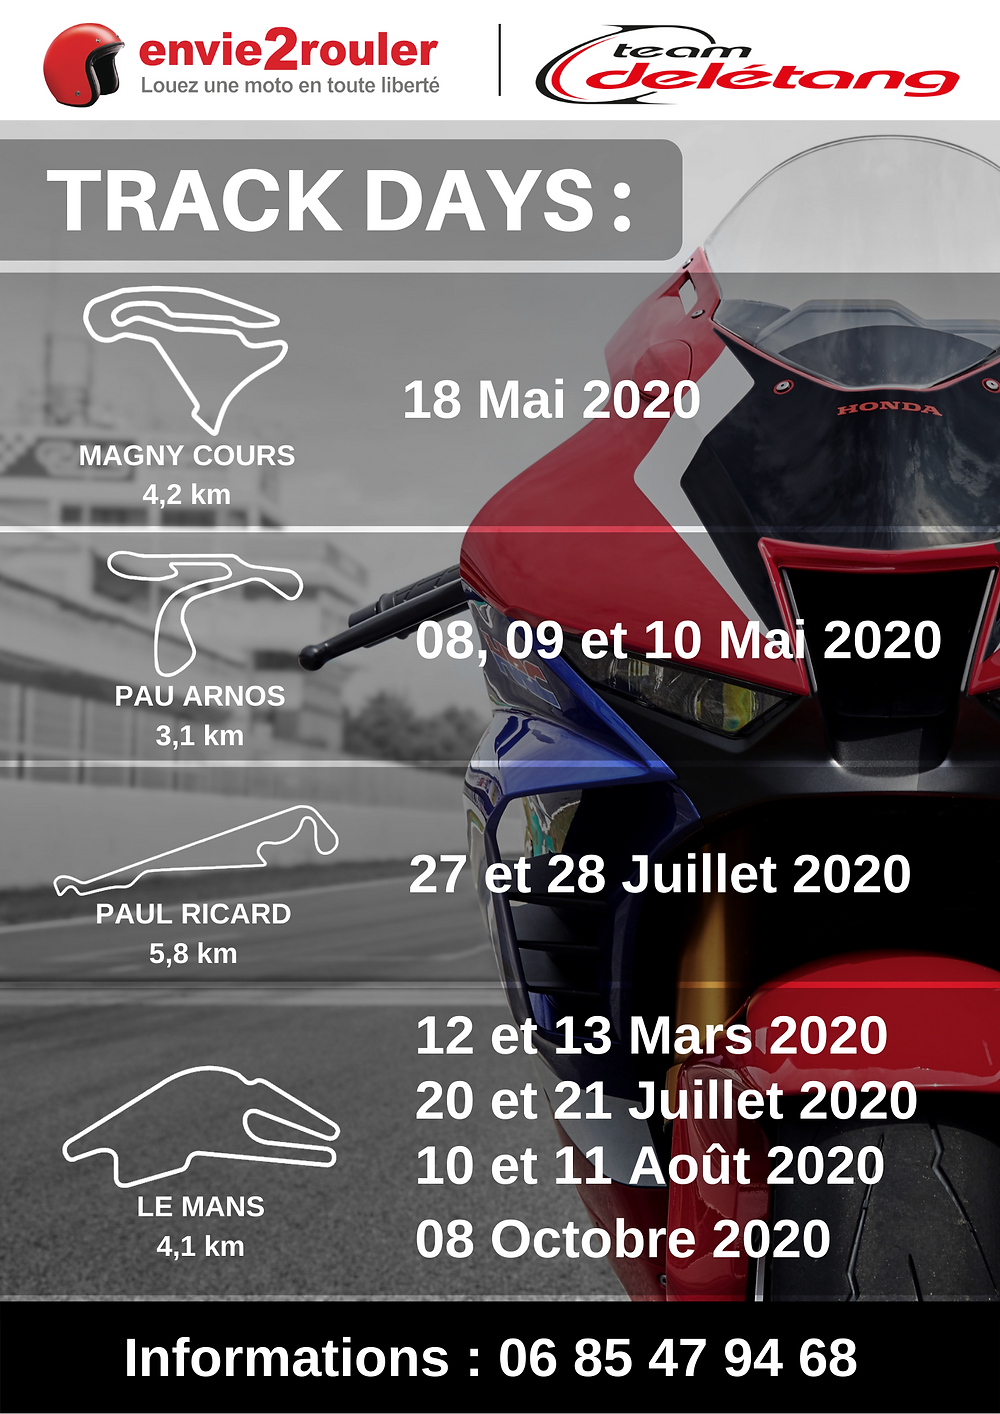 flyer envie2rouler track days